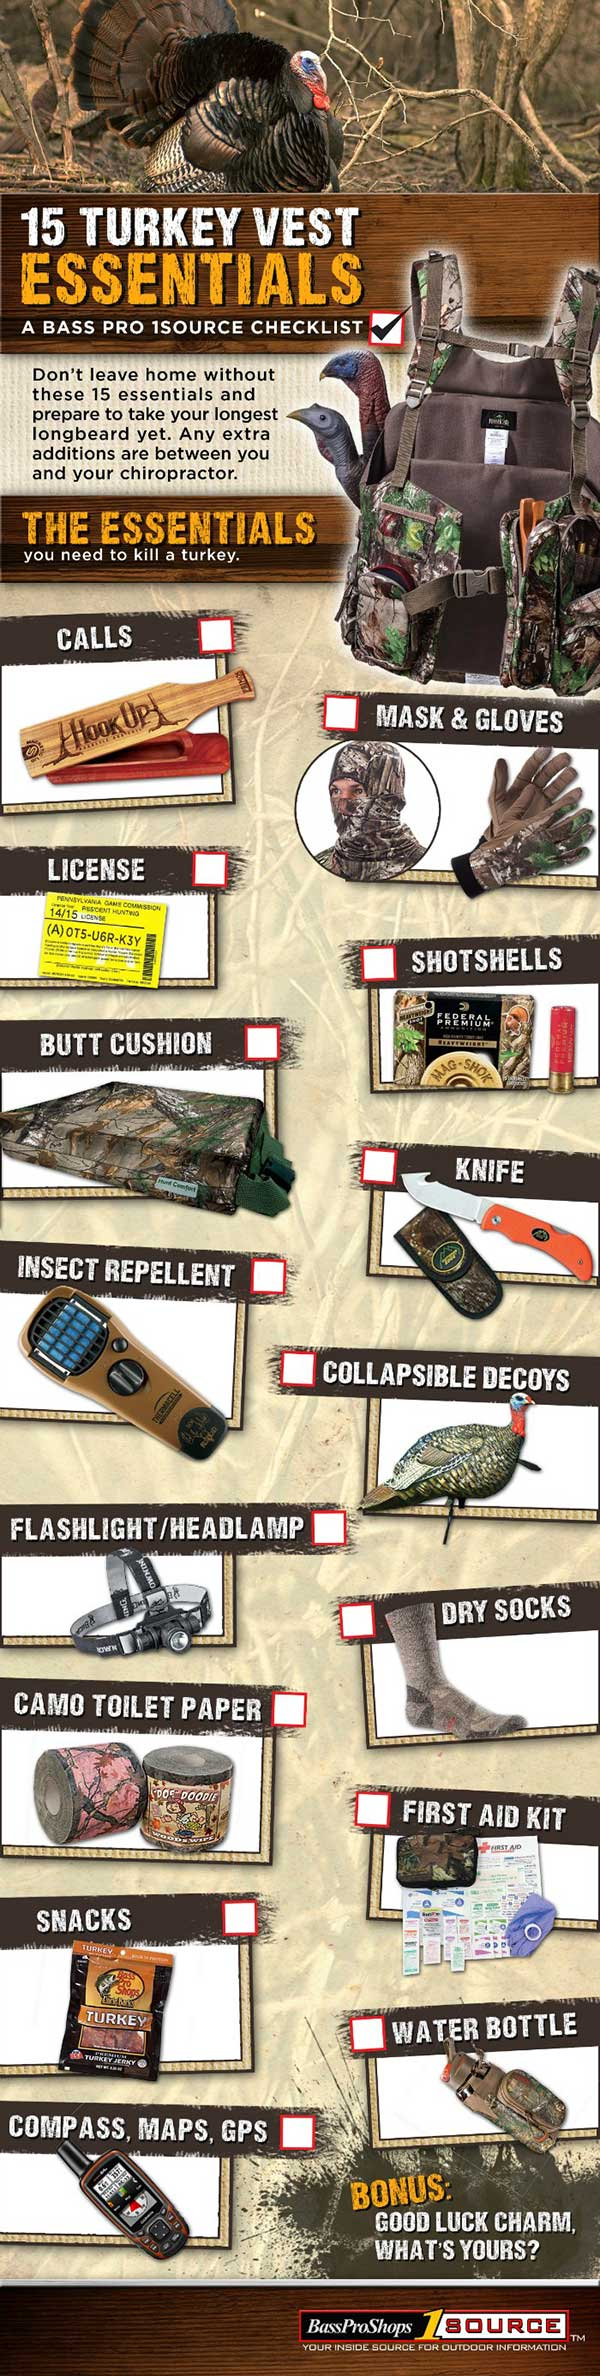 turkey vest infographic